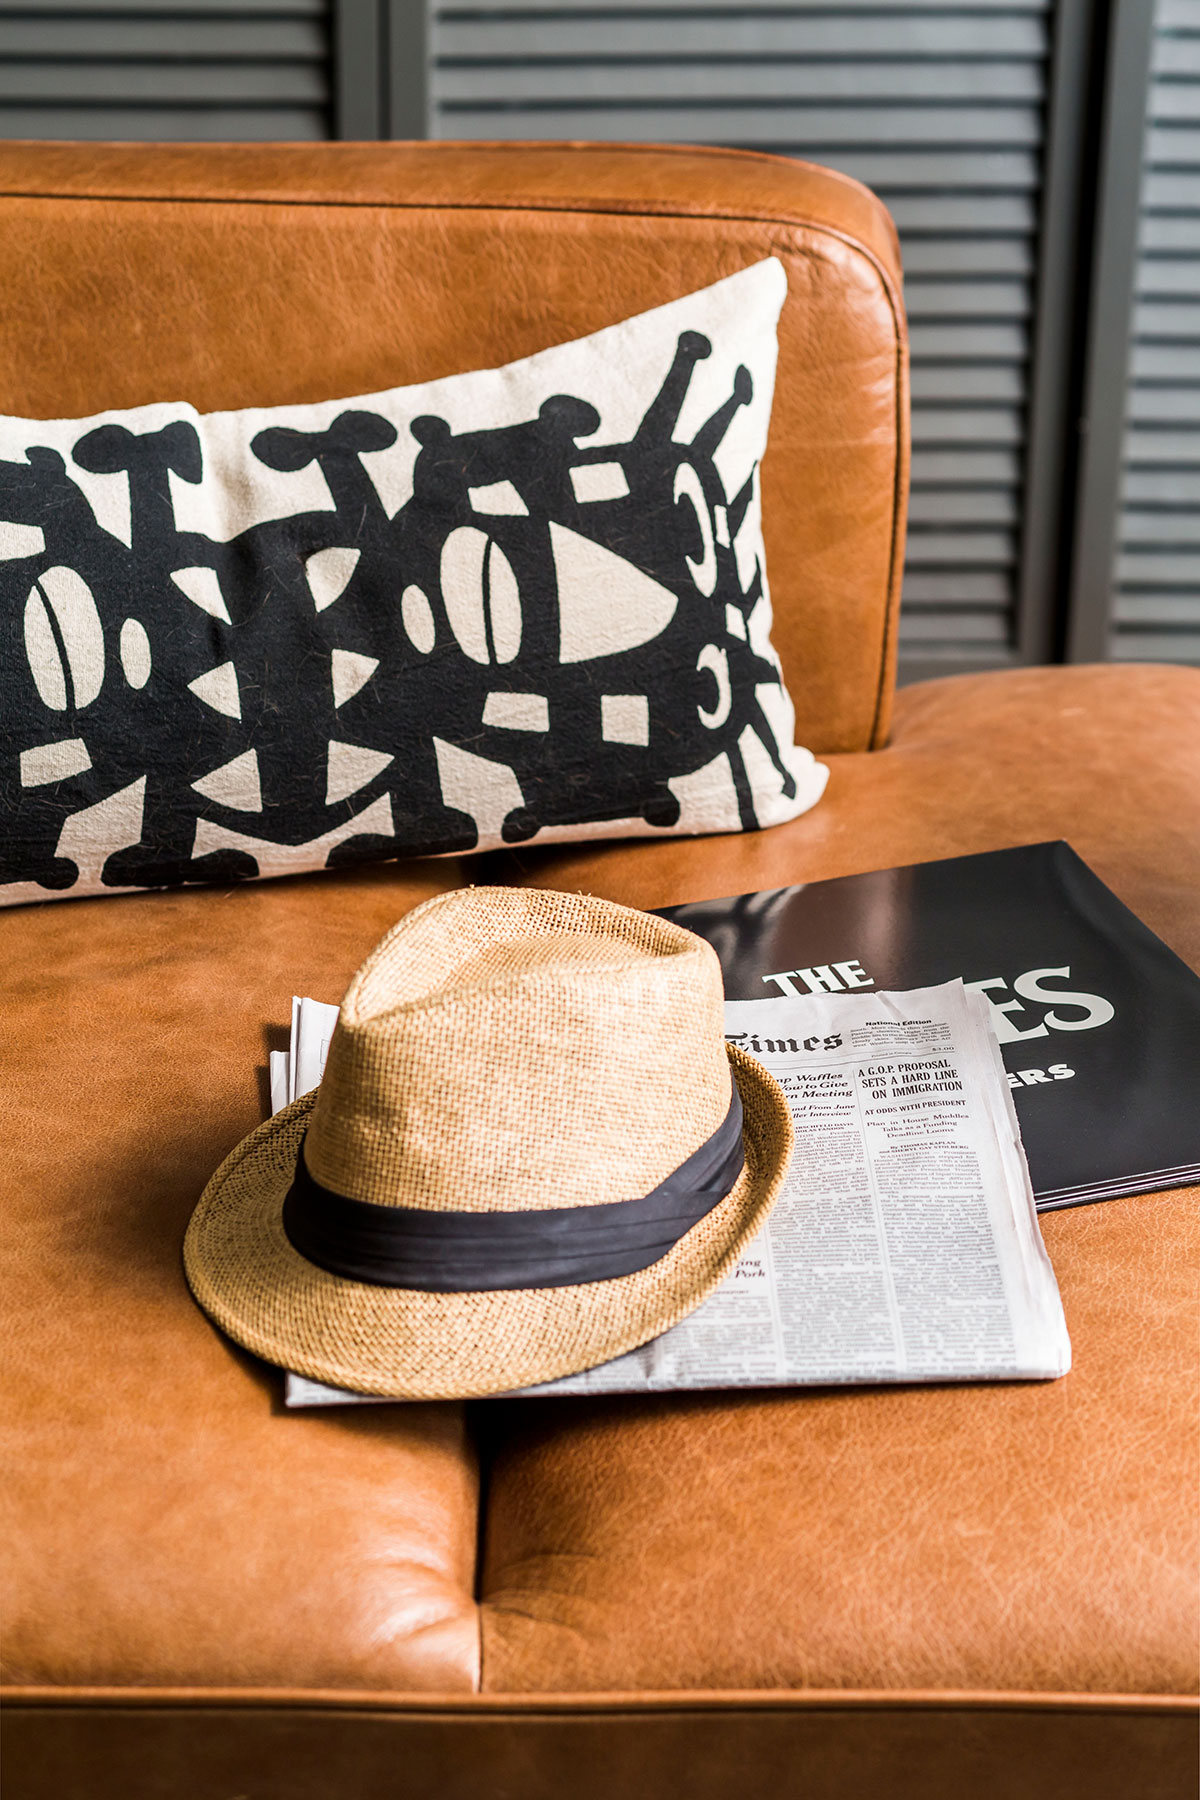 Leather chaise with black and white throw pillow, newspaper, and hat